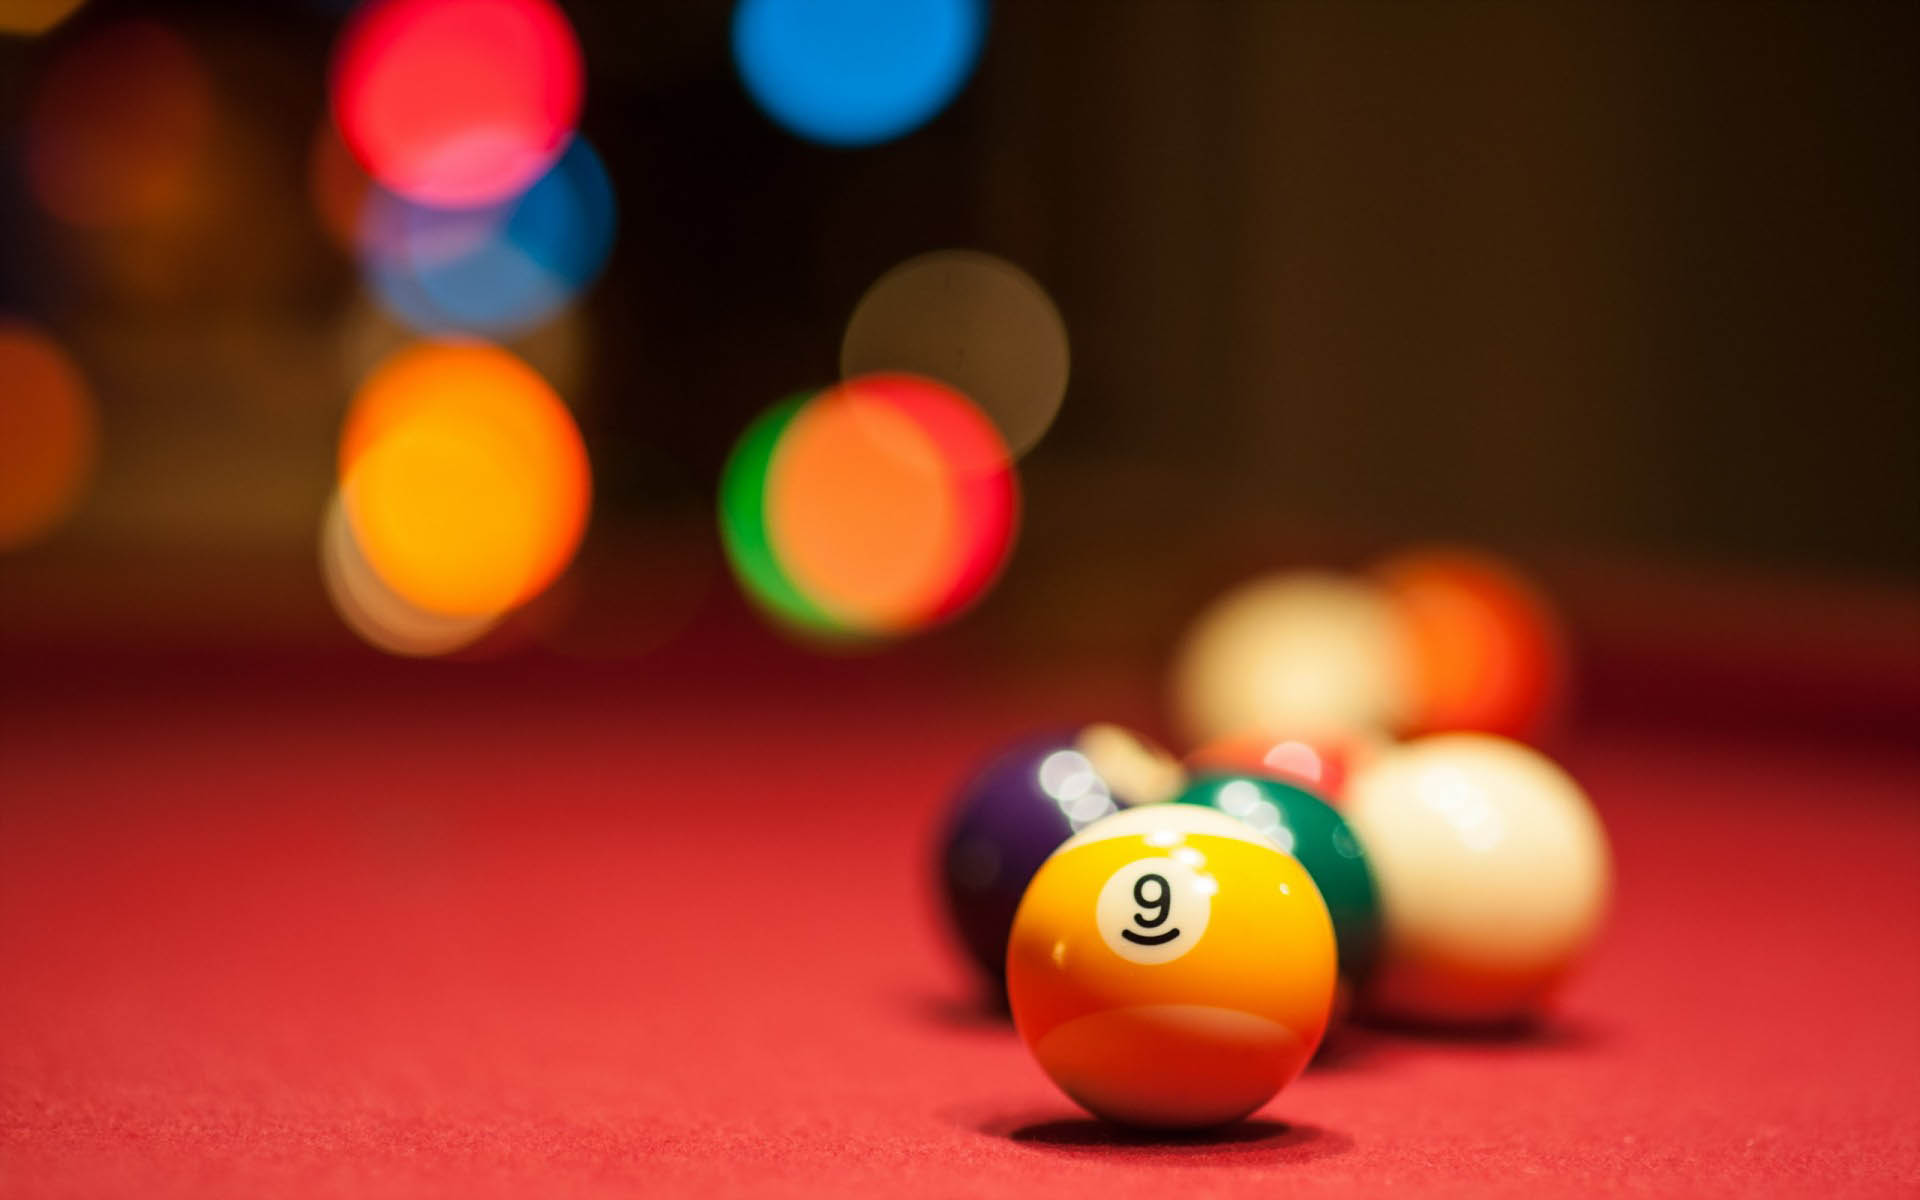 billiards-wallpaper-3.jpg